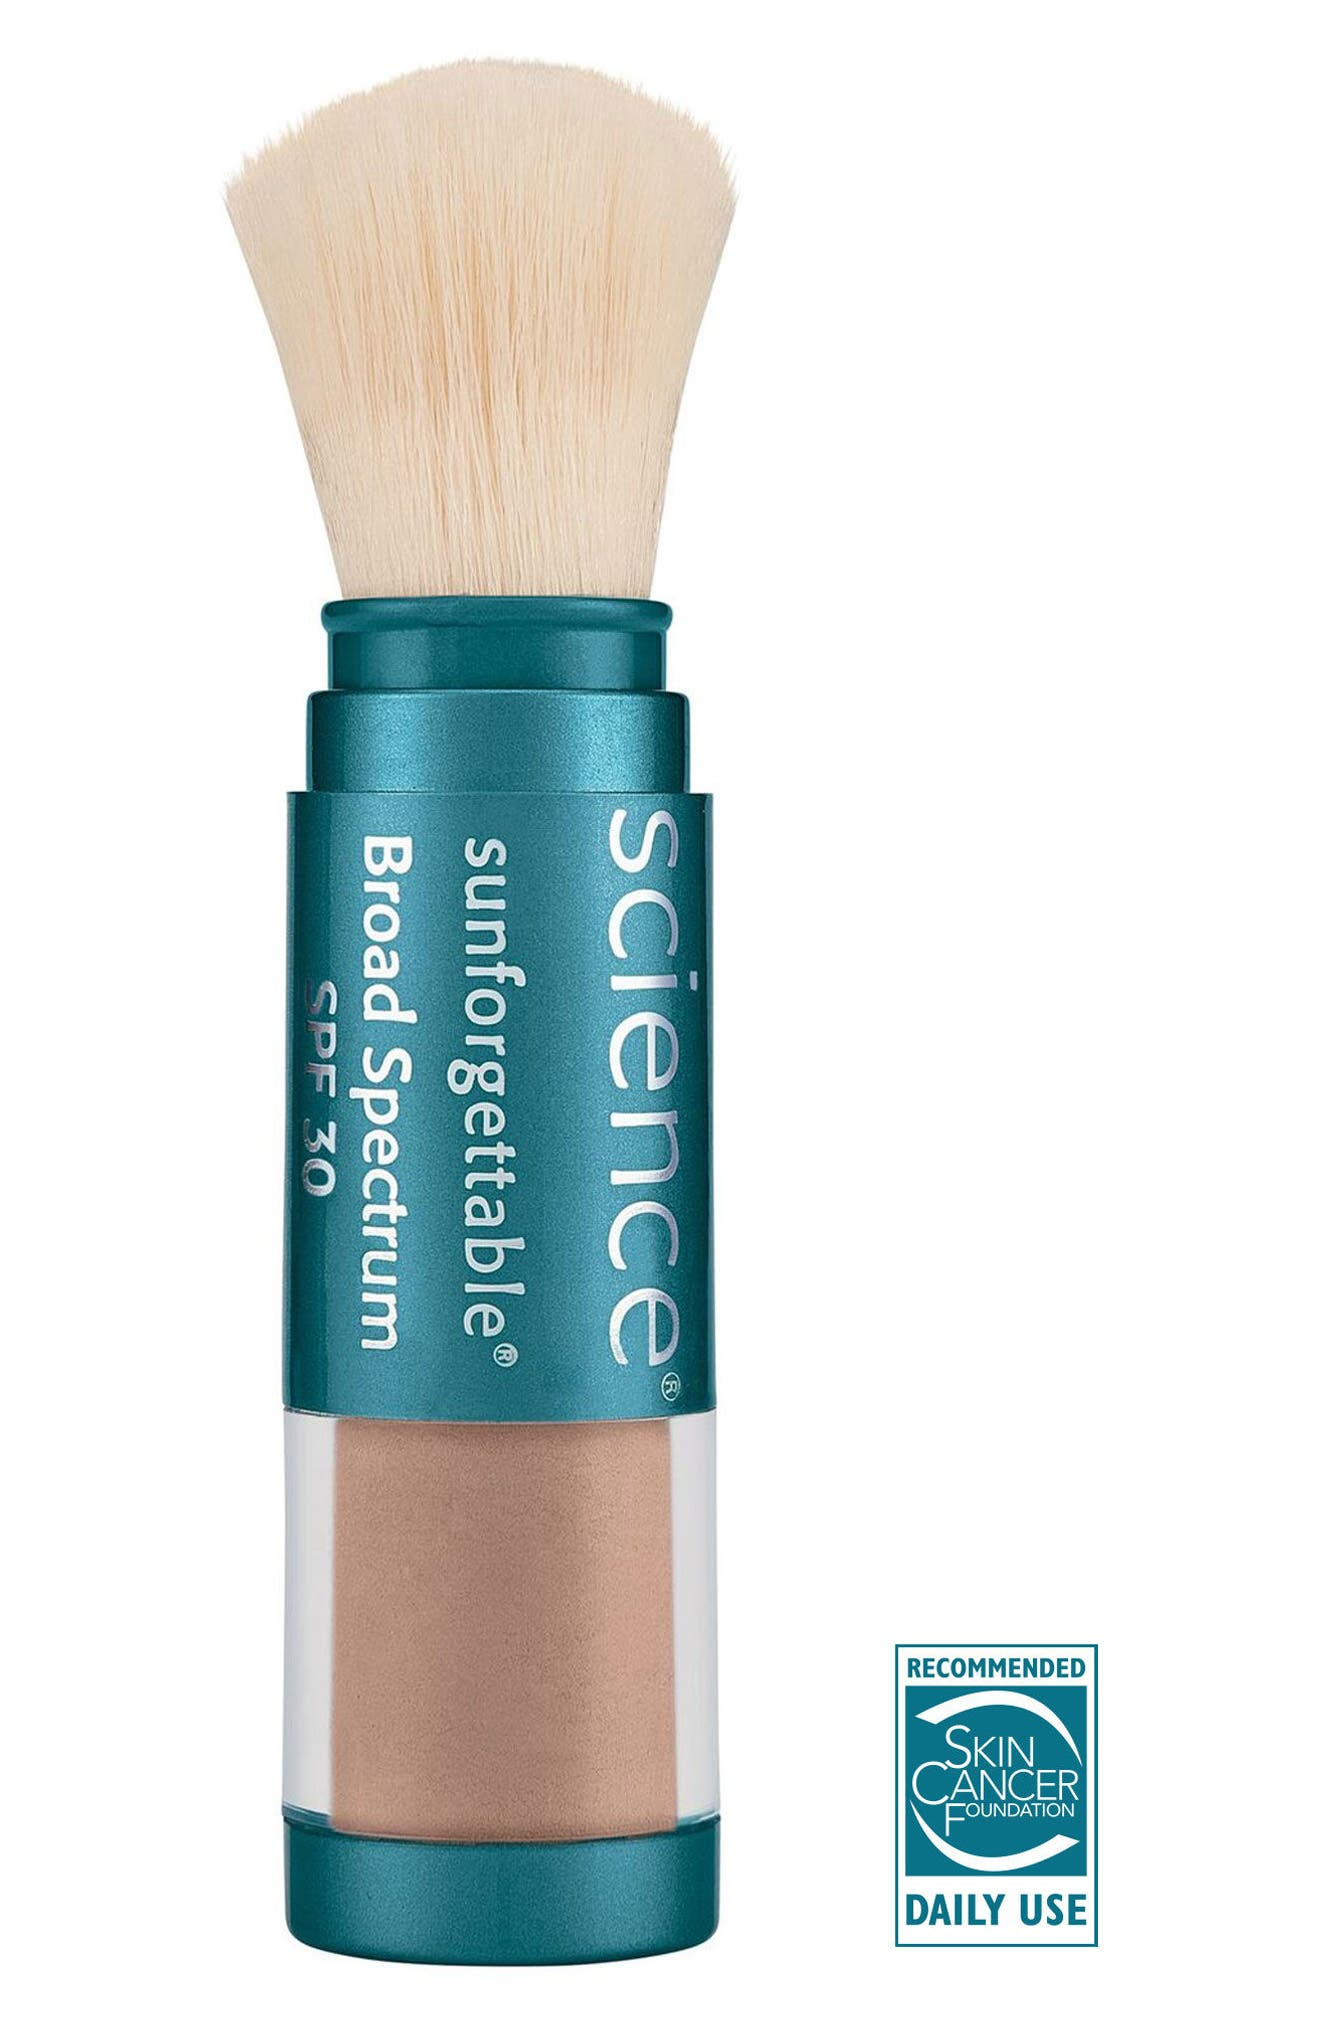 What it is: A brush-on sunscreen that offers powerful SPF 30 protection alone or over your makeup. What it does: It provides sheer, natural-looking coverage and SPF in one simple on-the-go application. Stay radiant every day without damaging your skin. How to use: Sweep the brush over your face and body to release the powder. Use small, circular strokes to release more powder for more coverage. Apply liberally and evenly before sun exposure.